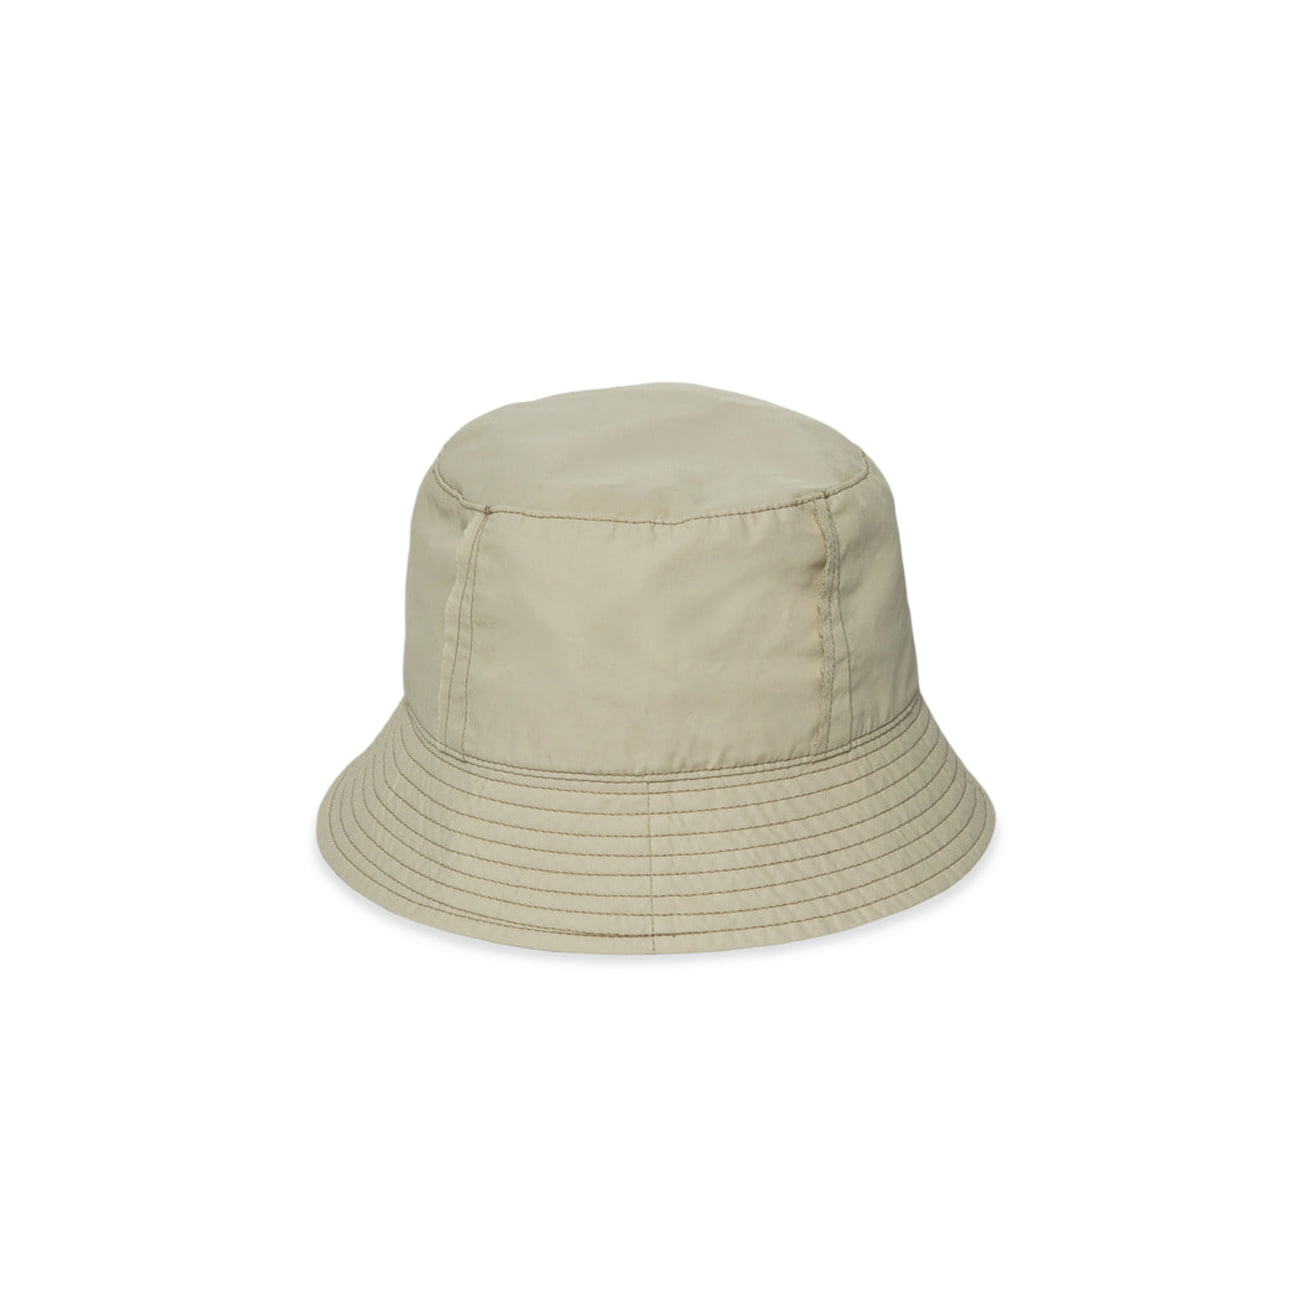 M.Nii x LIFUL Cut Off Bucket Hat